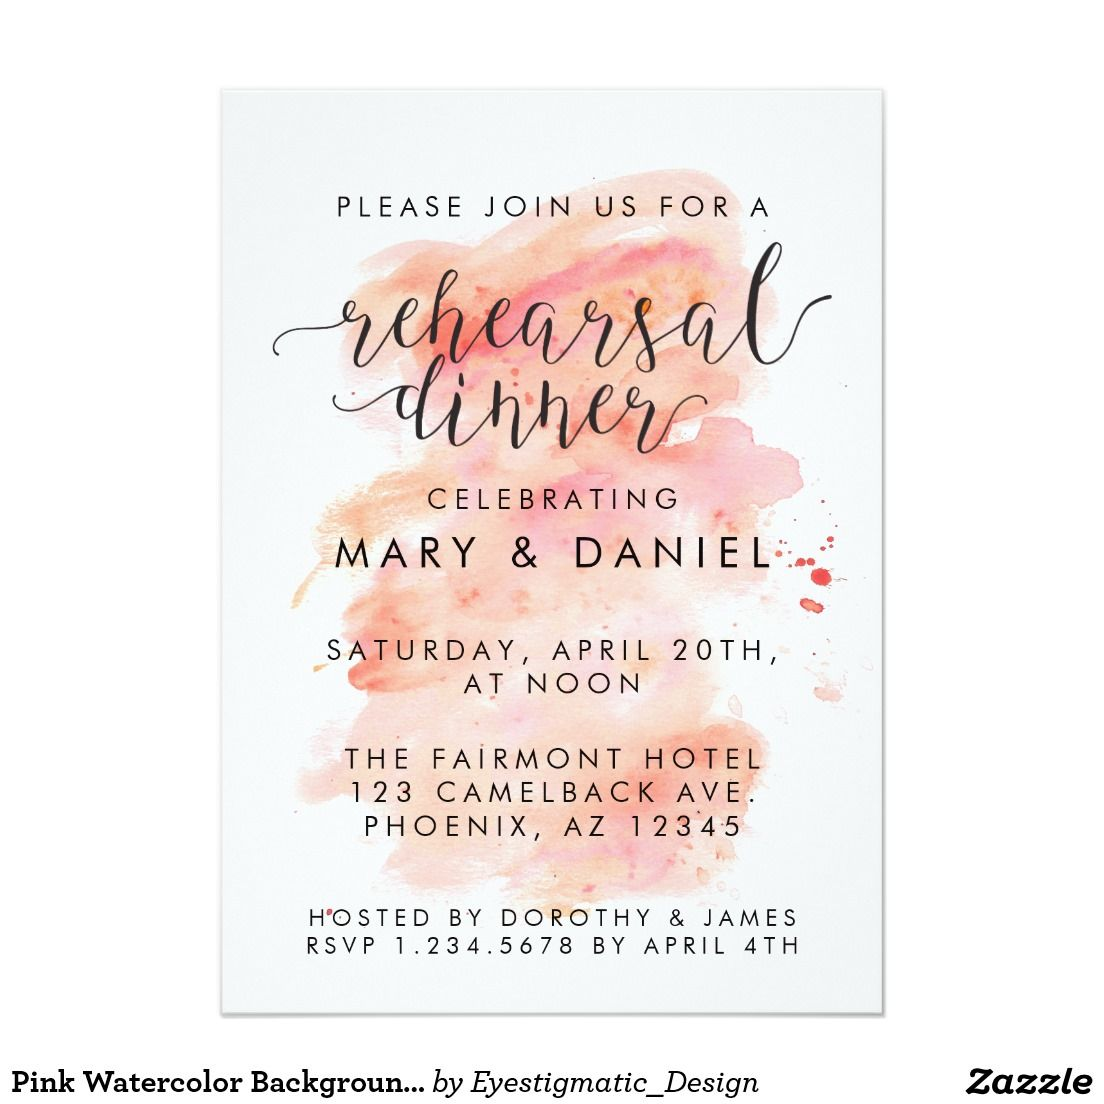 Pink Watercolor Background Rehearsal Dinner Invitation